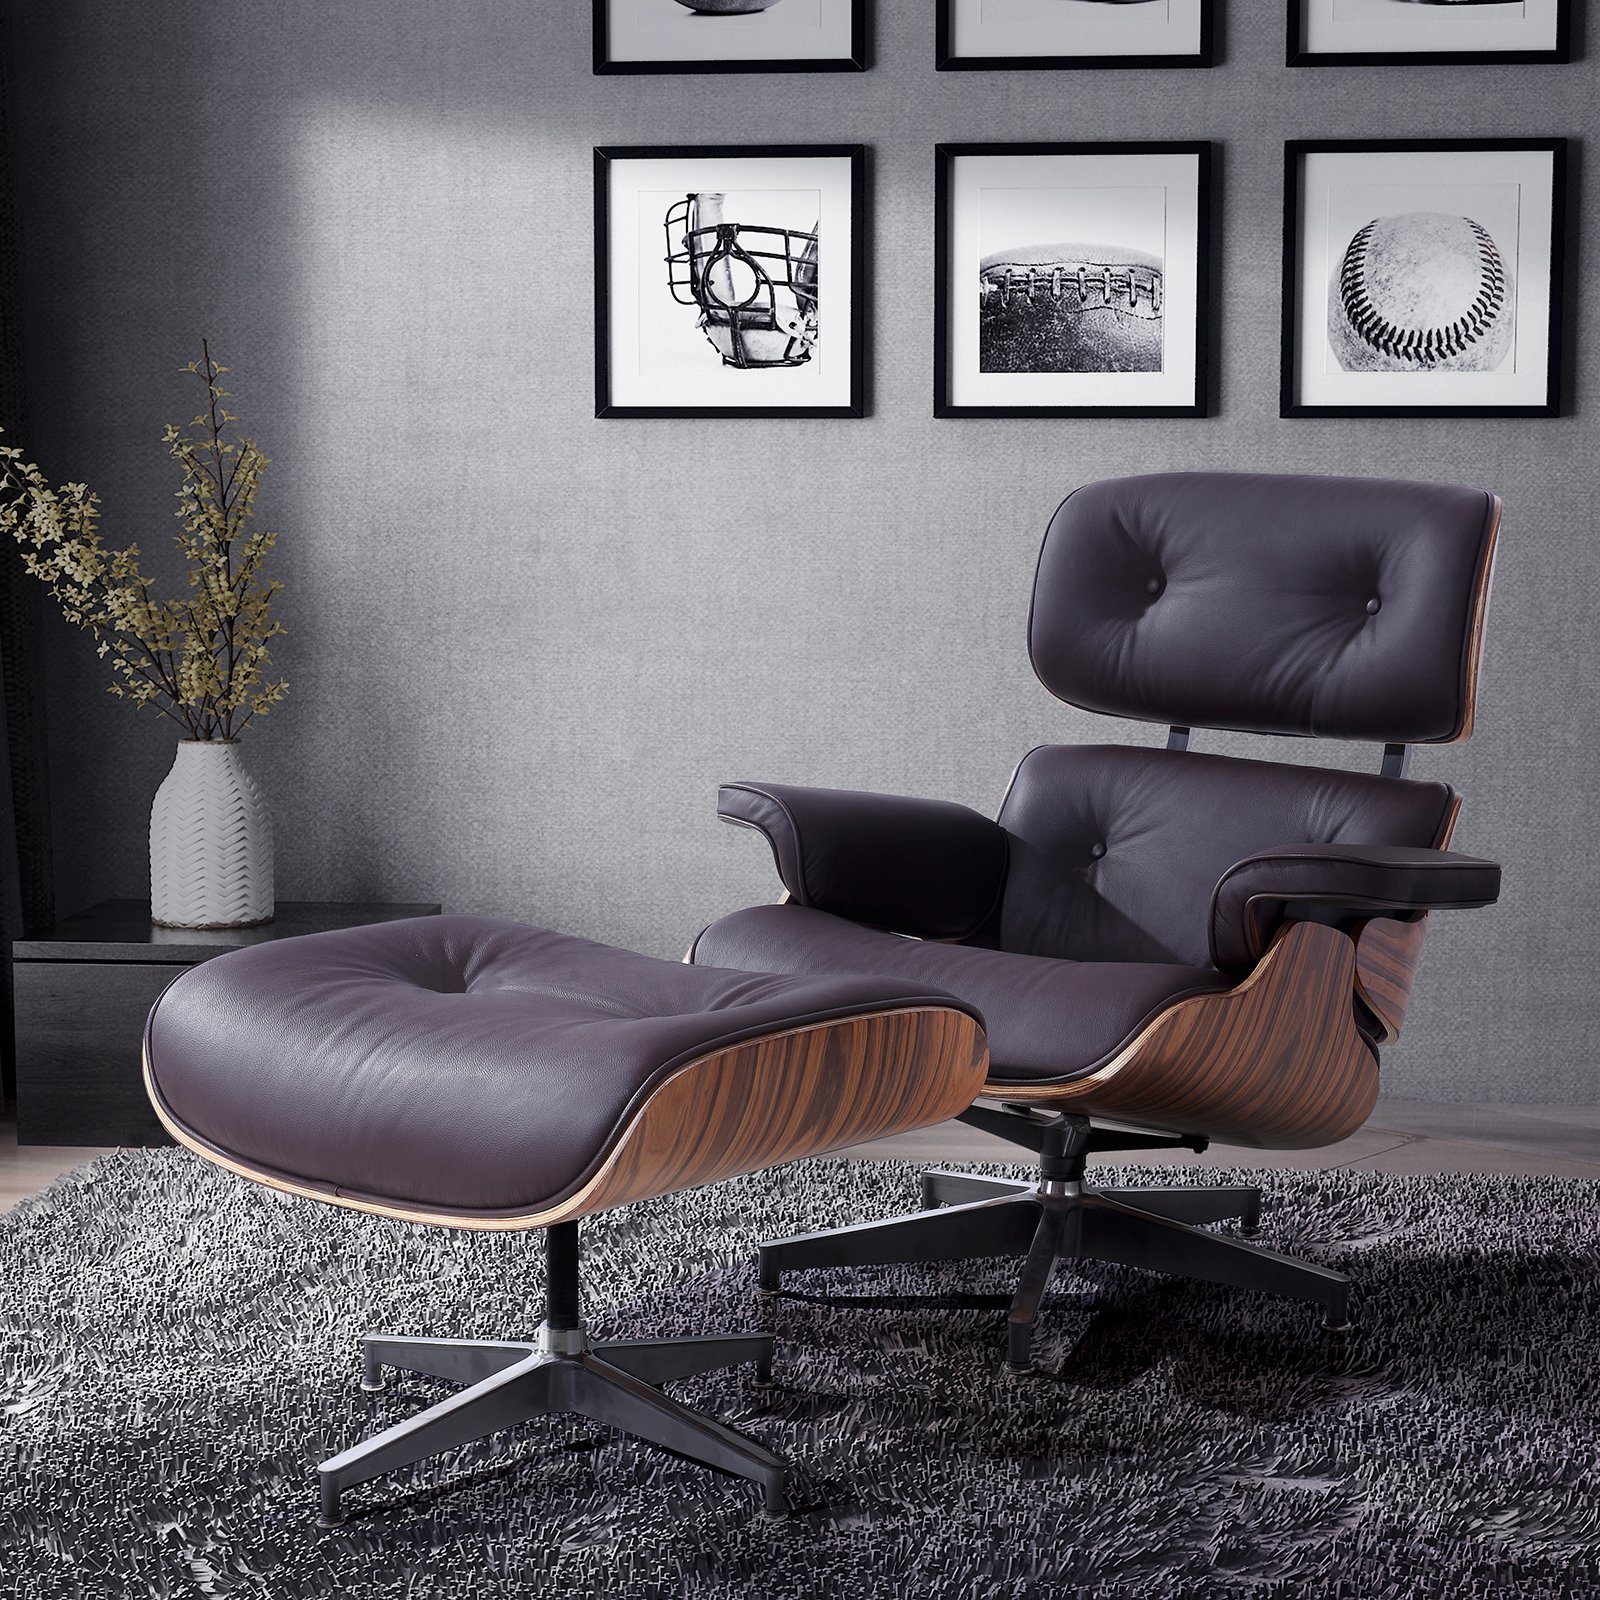 Mecor Eames Lounge Chair with Ottoman, Mid Century Palisander Chair, 100% Grain Italian Leather Recliner Chair with Heavy Duty Base Support for Living Room (Brown) by mecor